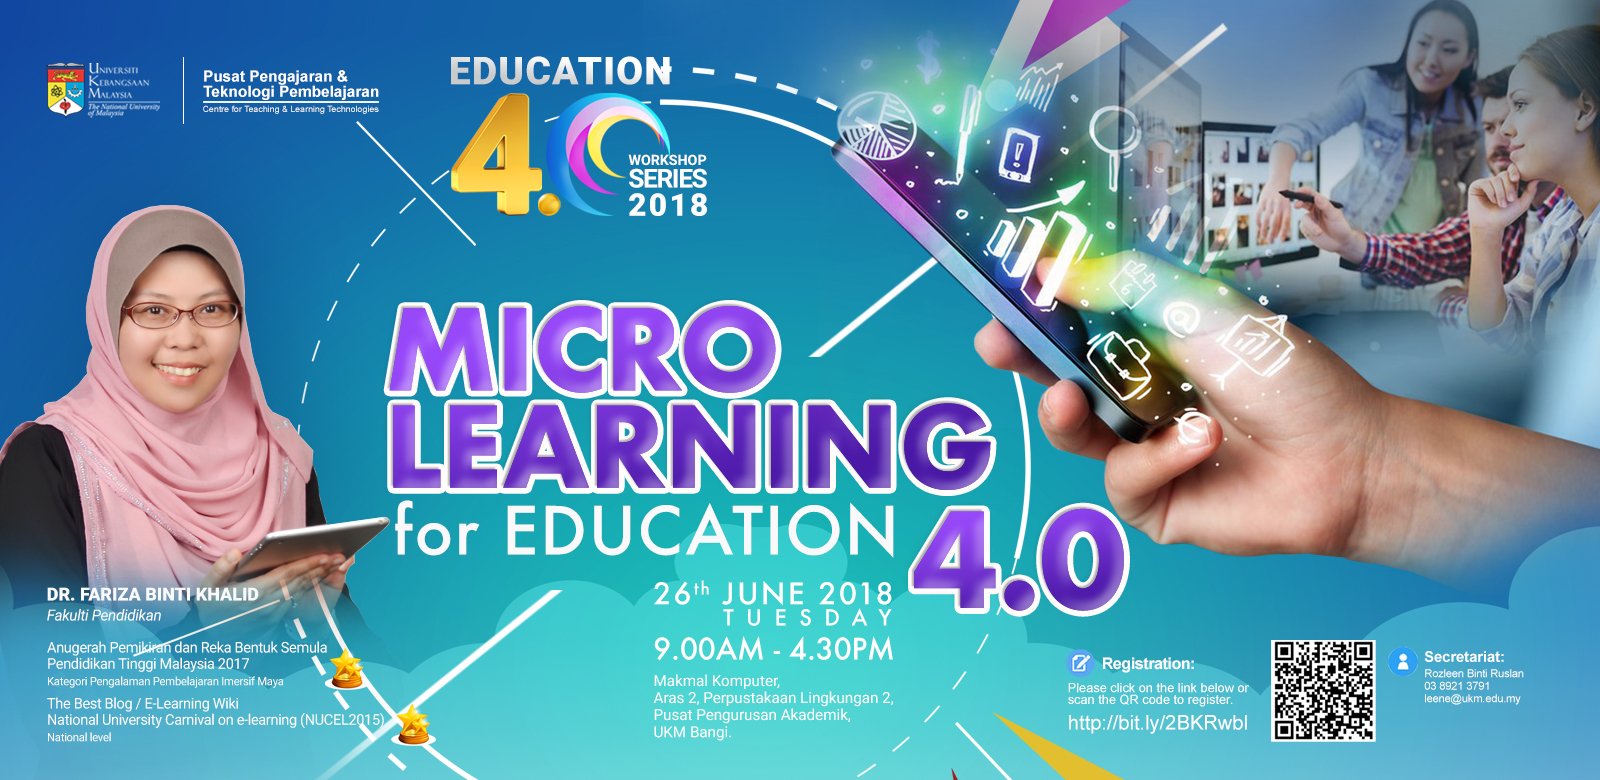 MICRO LEARNING FOR EDUCATION 4.0